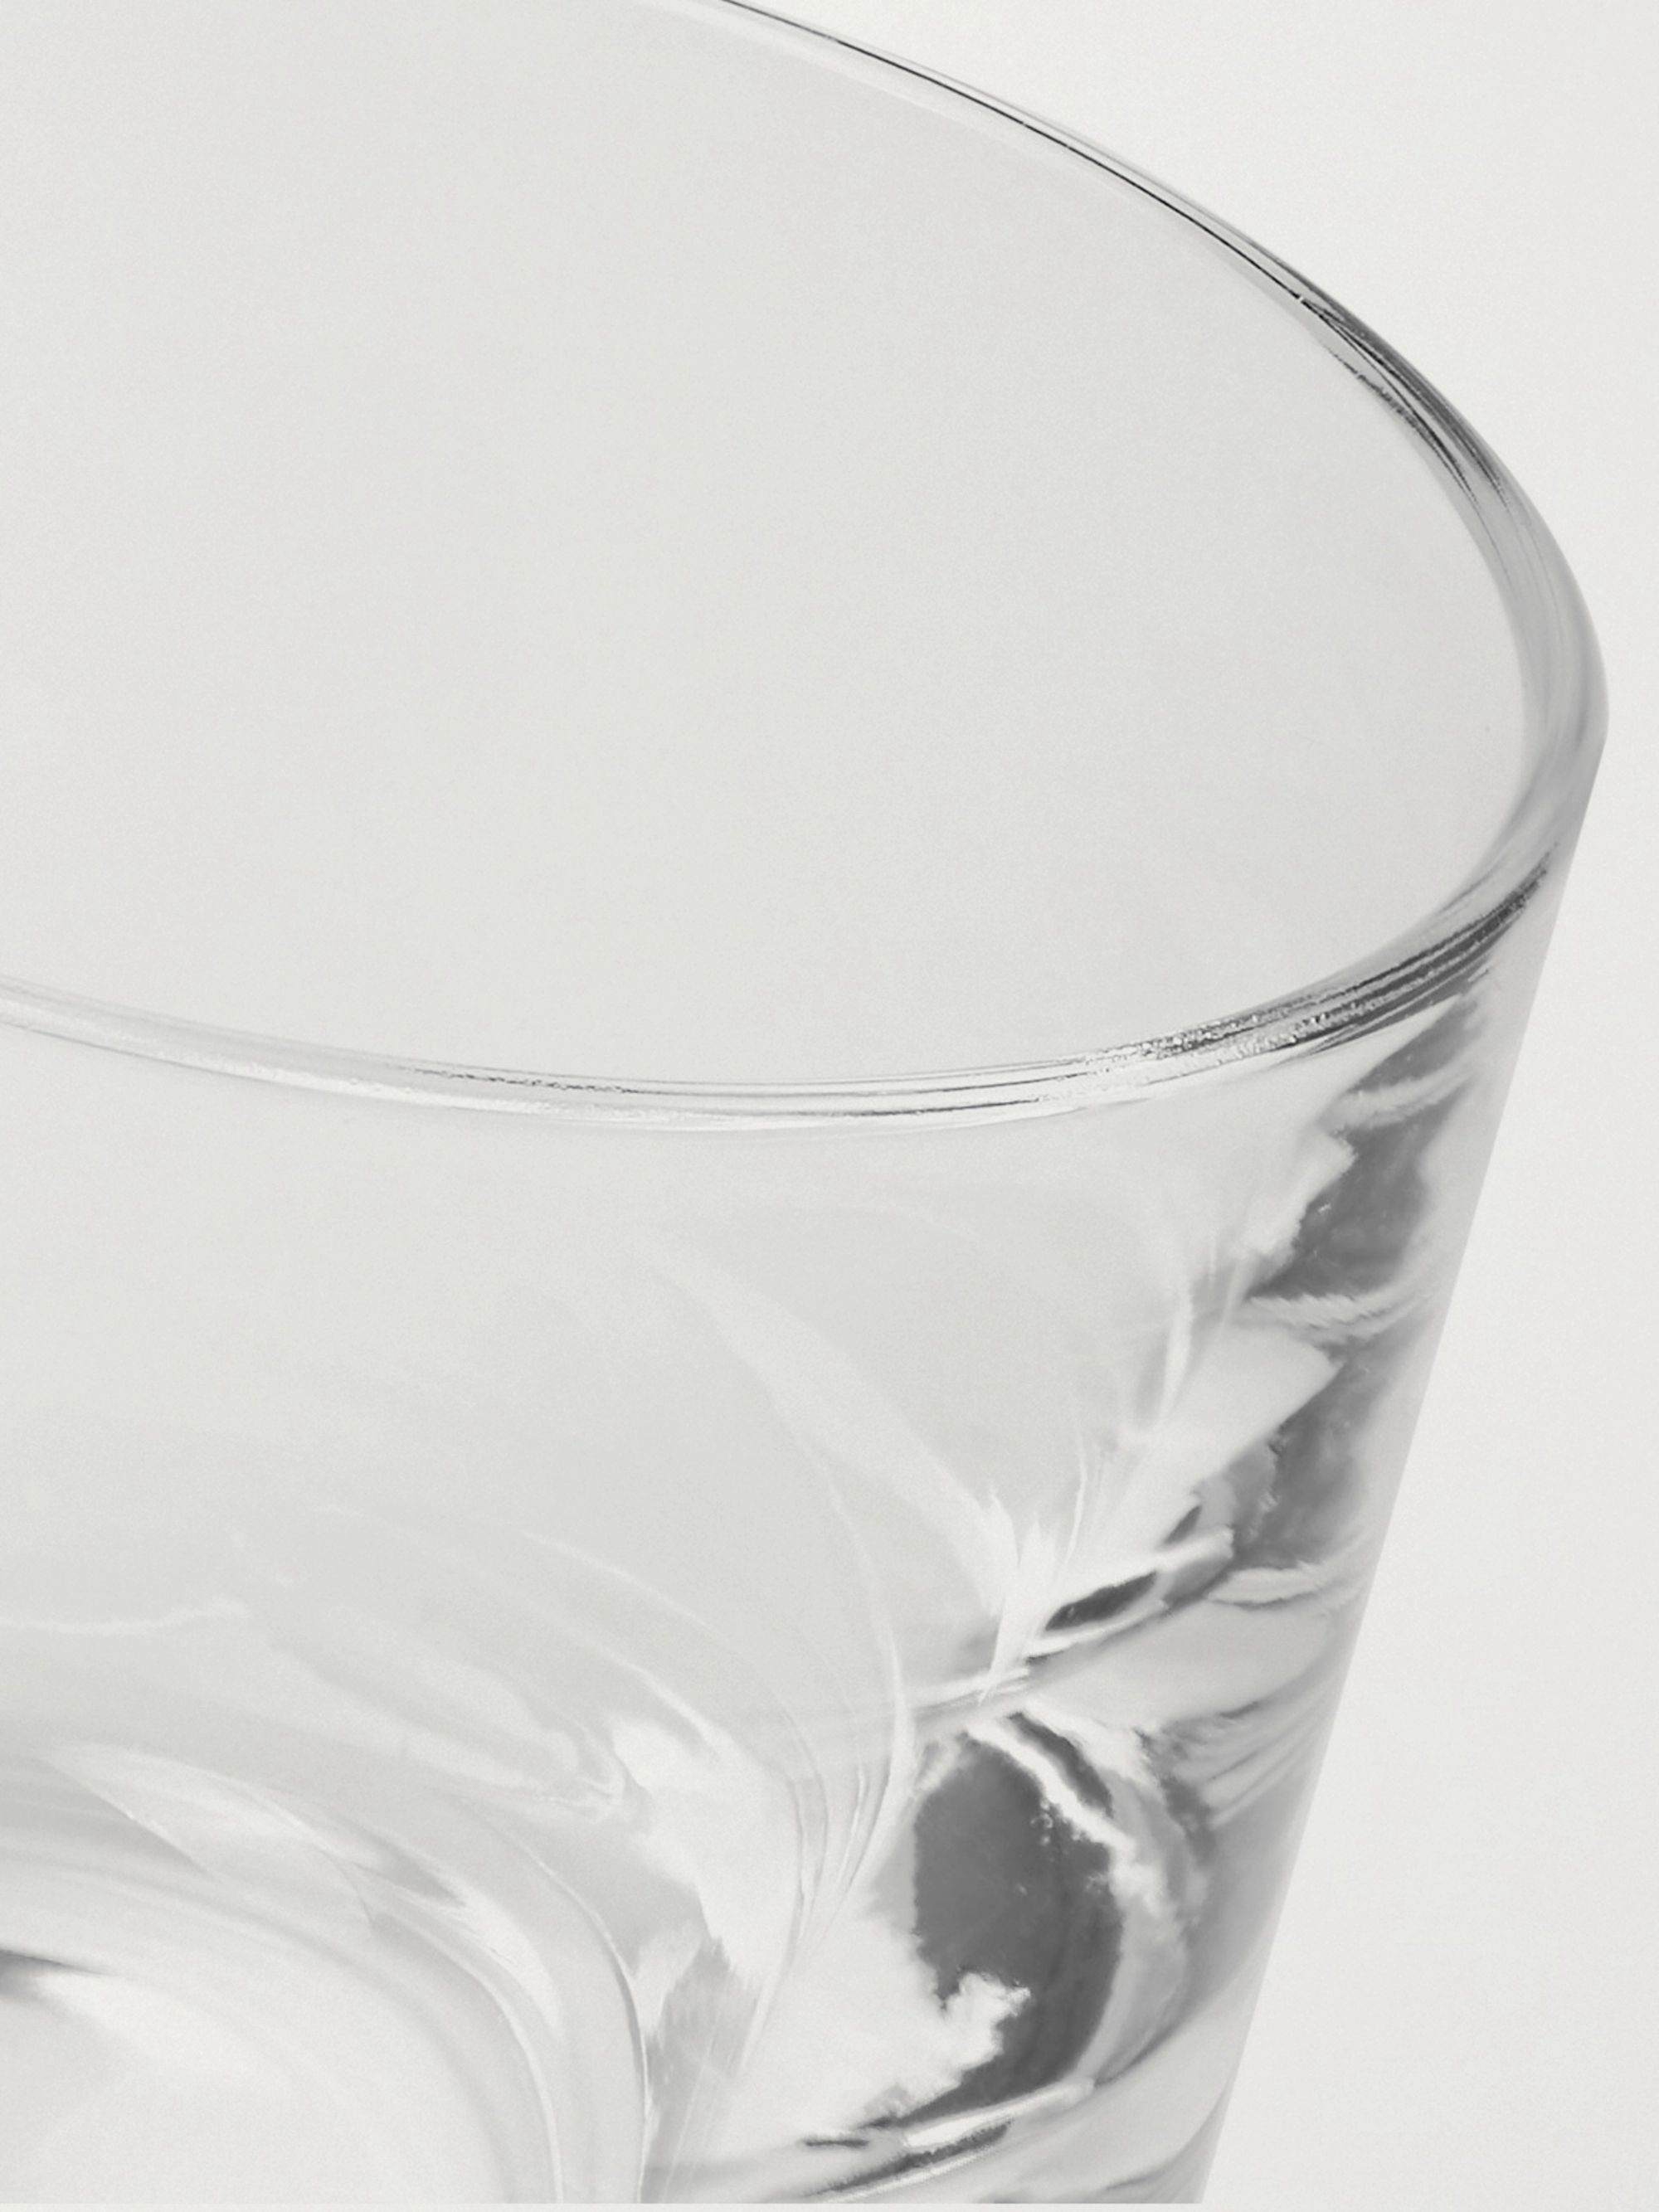 Kingsman + Higgs & Crick Set of Two Crystal Shot Glasses